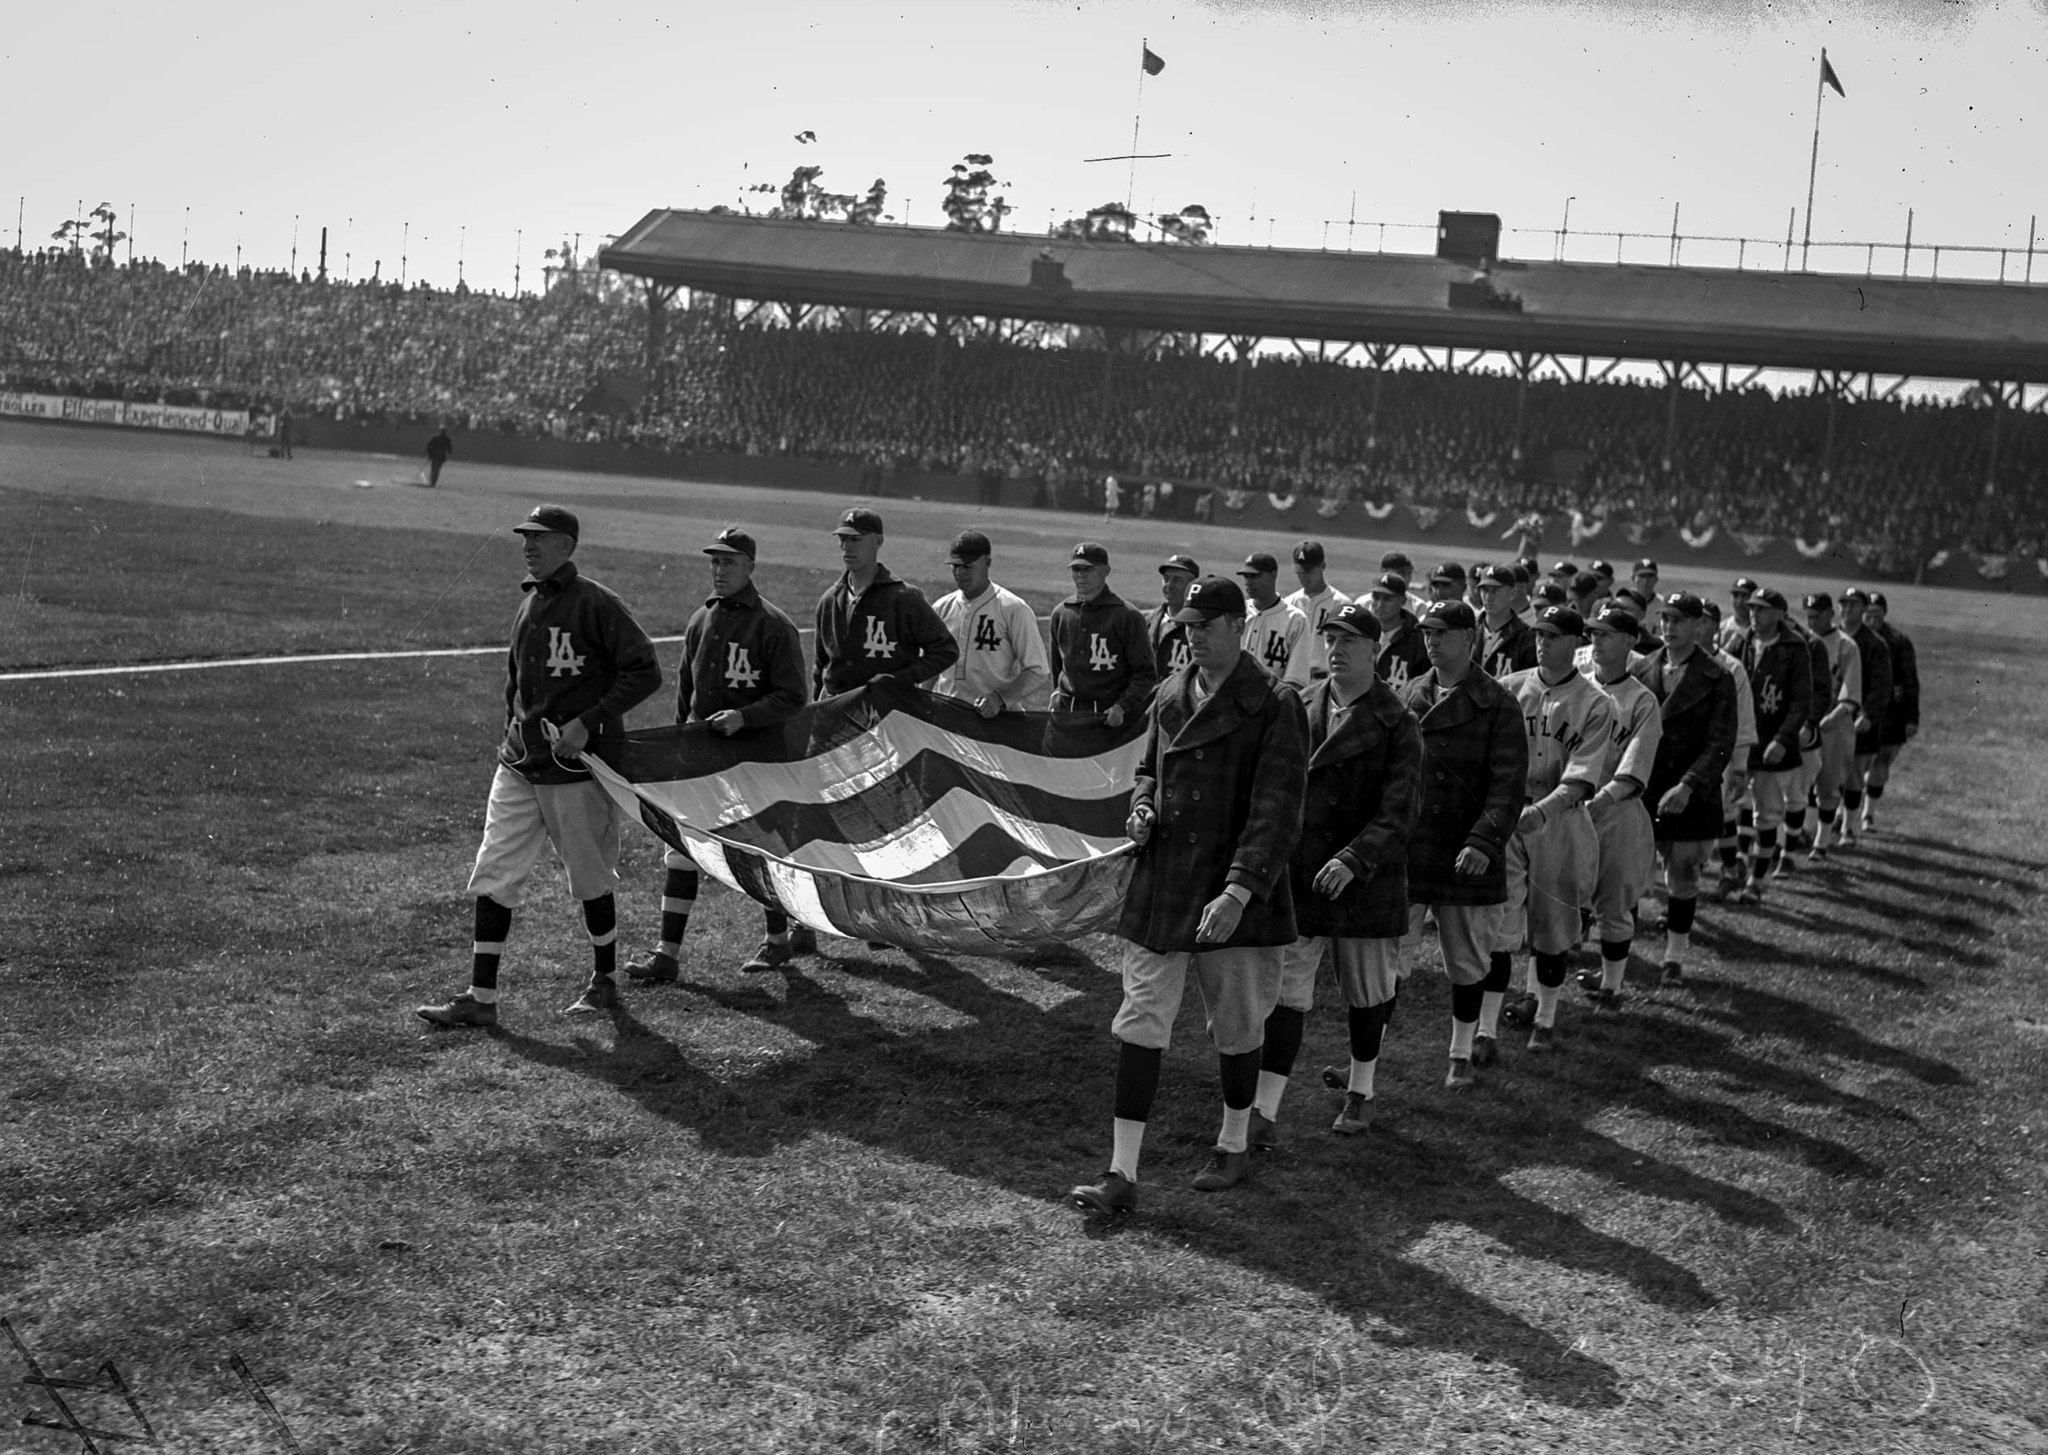 April 7, 1925: Members of the Los Angeles Angels and Portland Beavers carry Old Glory out onto field